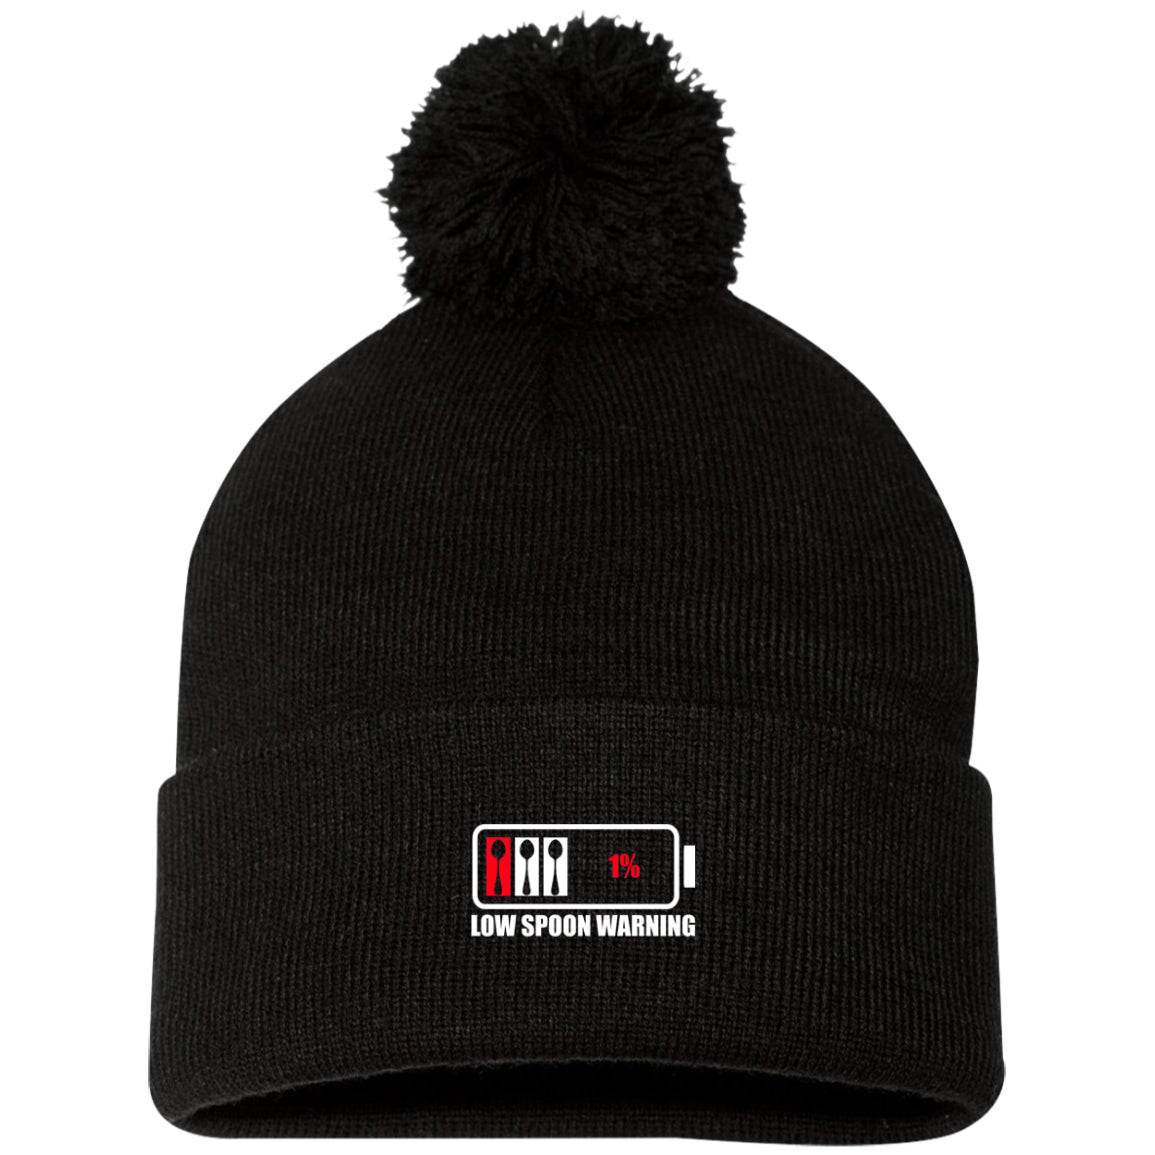 Low Spoon Warning Pom Pom Knit Cap - The Unchargeables